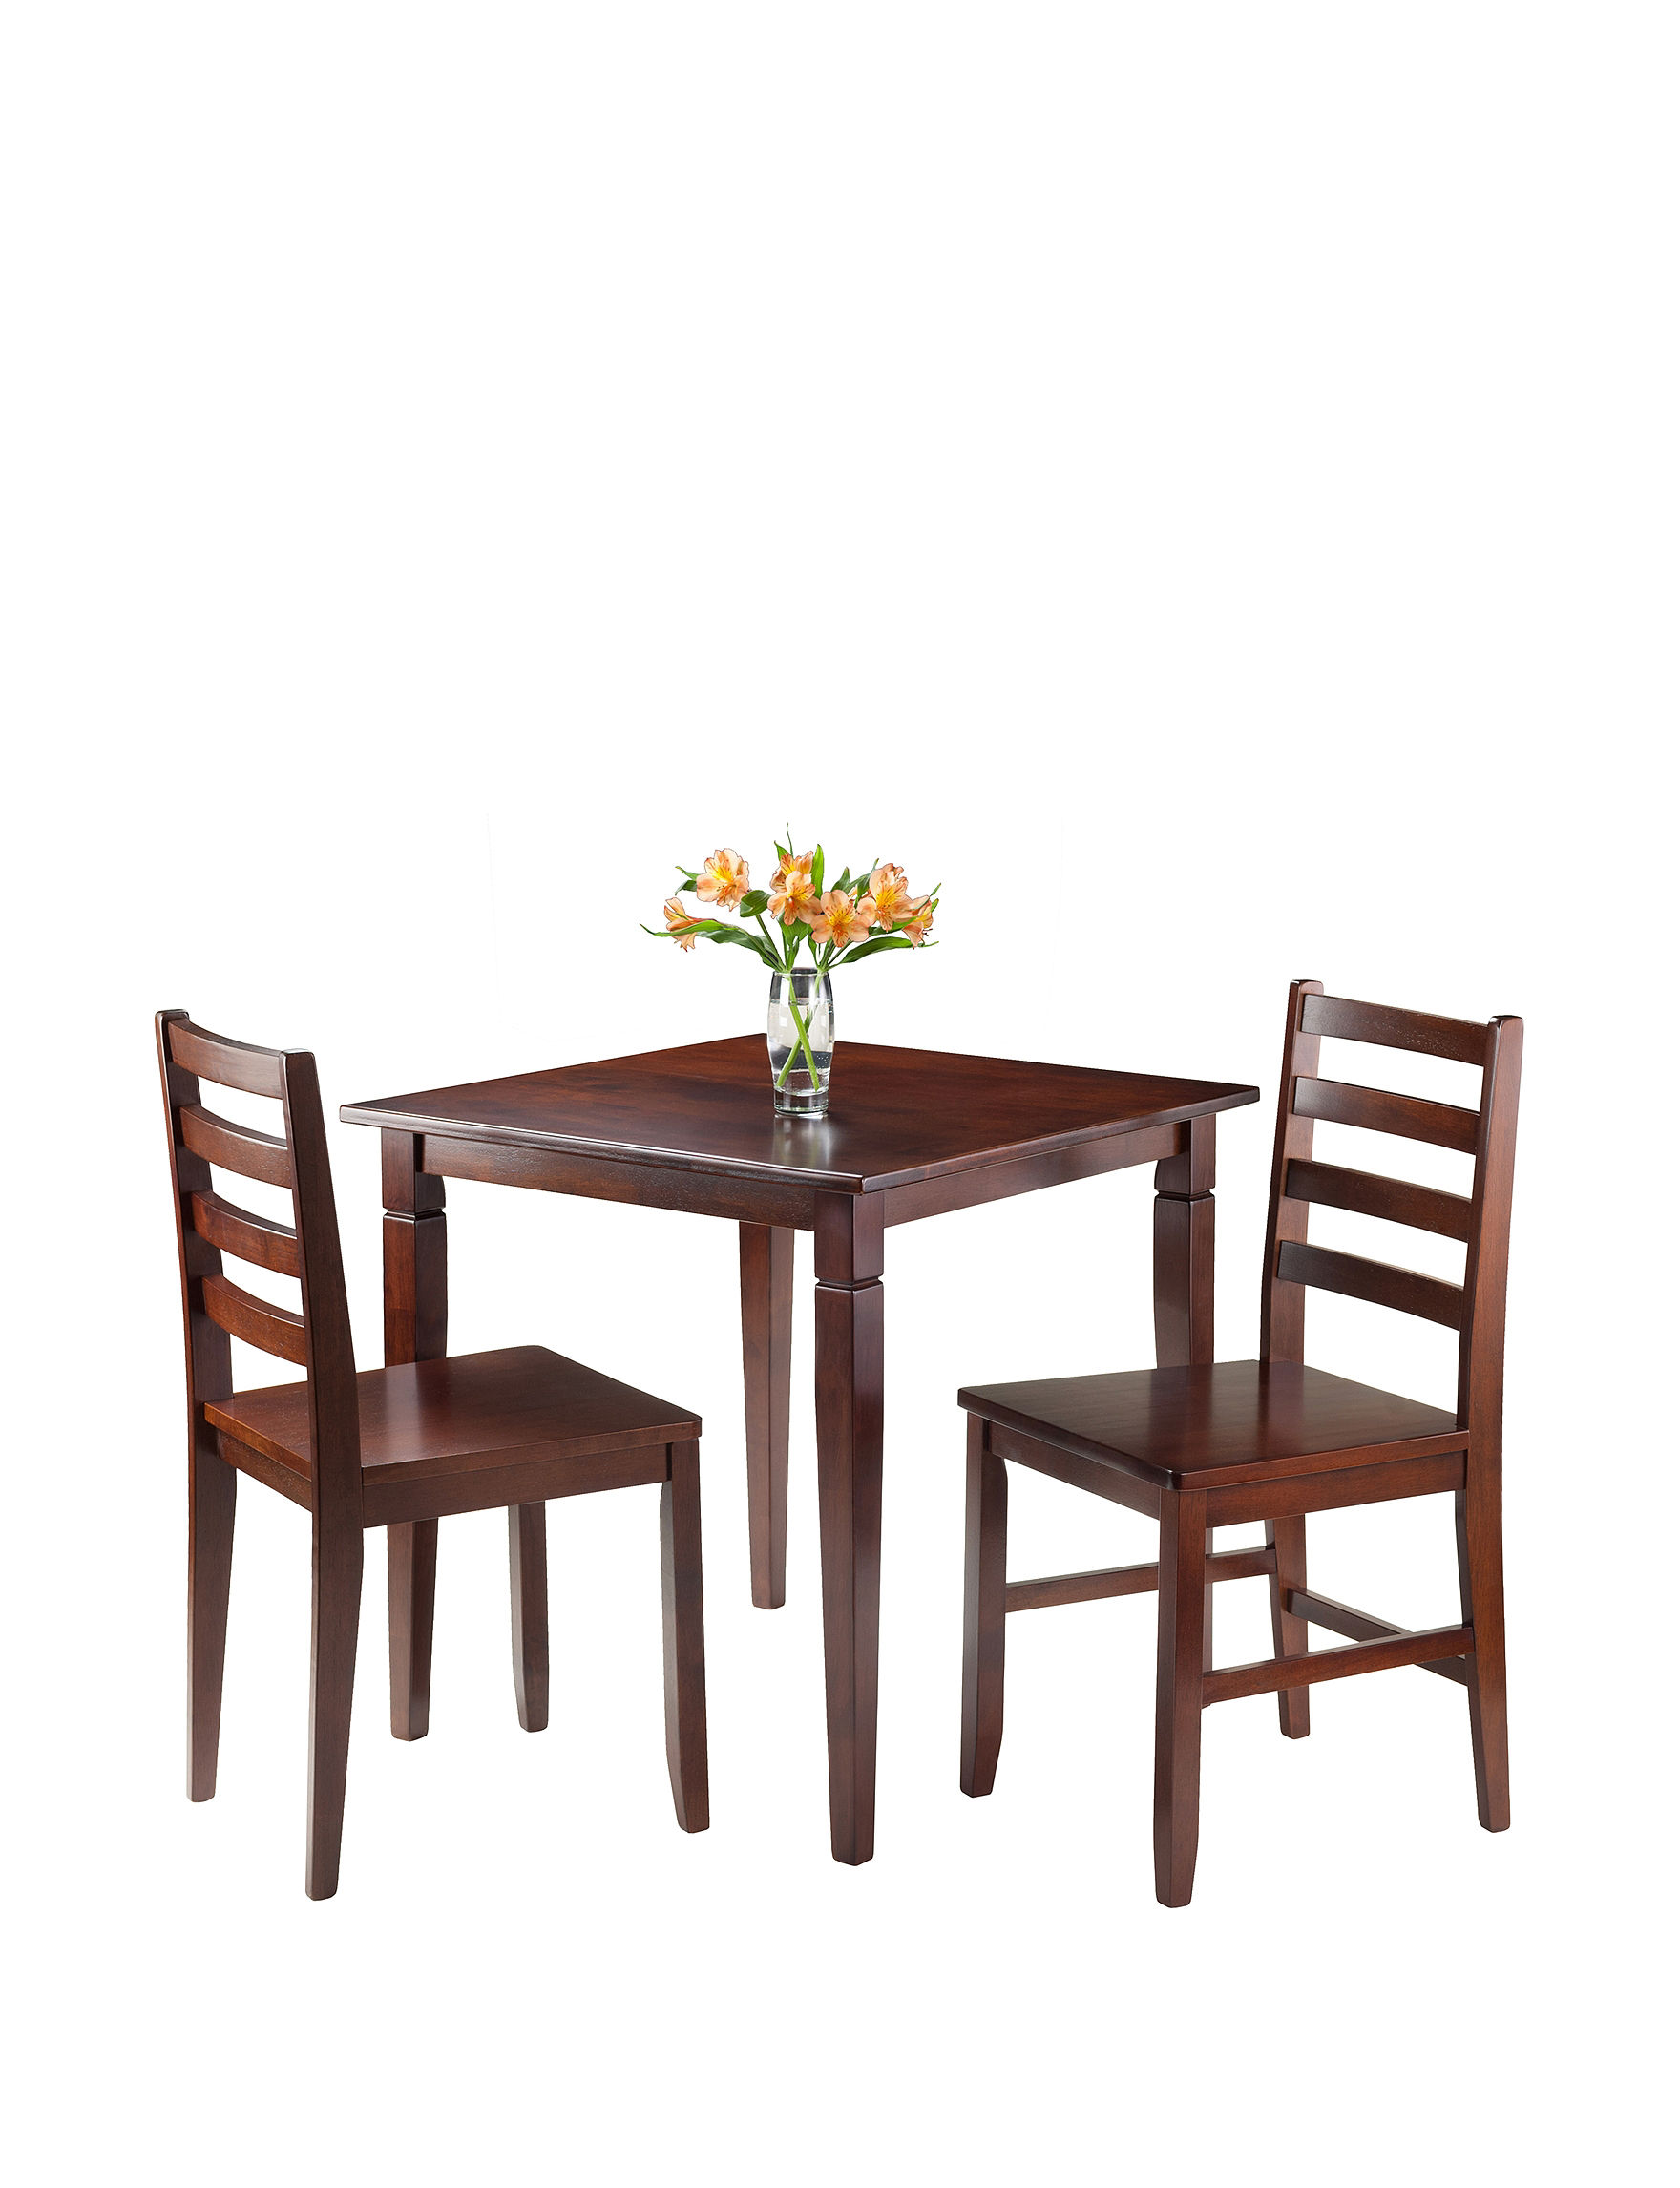 Winsome Dark Brown Dining Chairs Dining Room Sets Dining Tables Kitchen & Dining Furniture